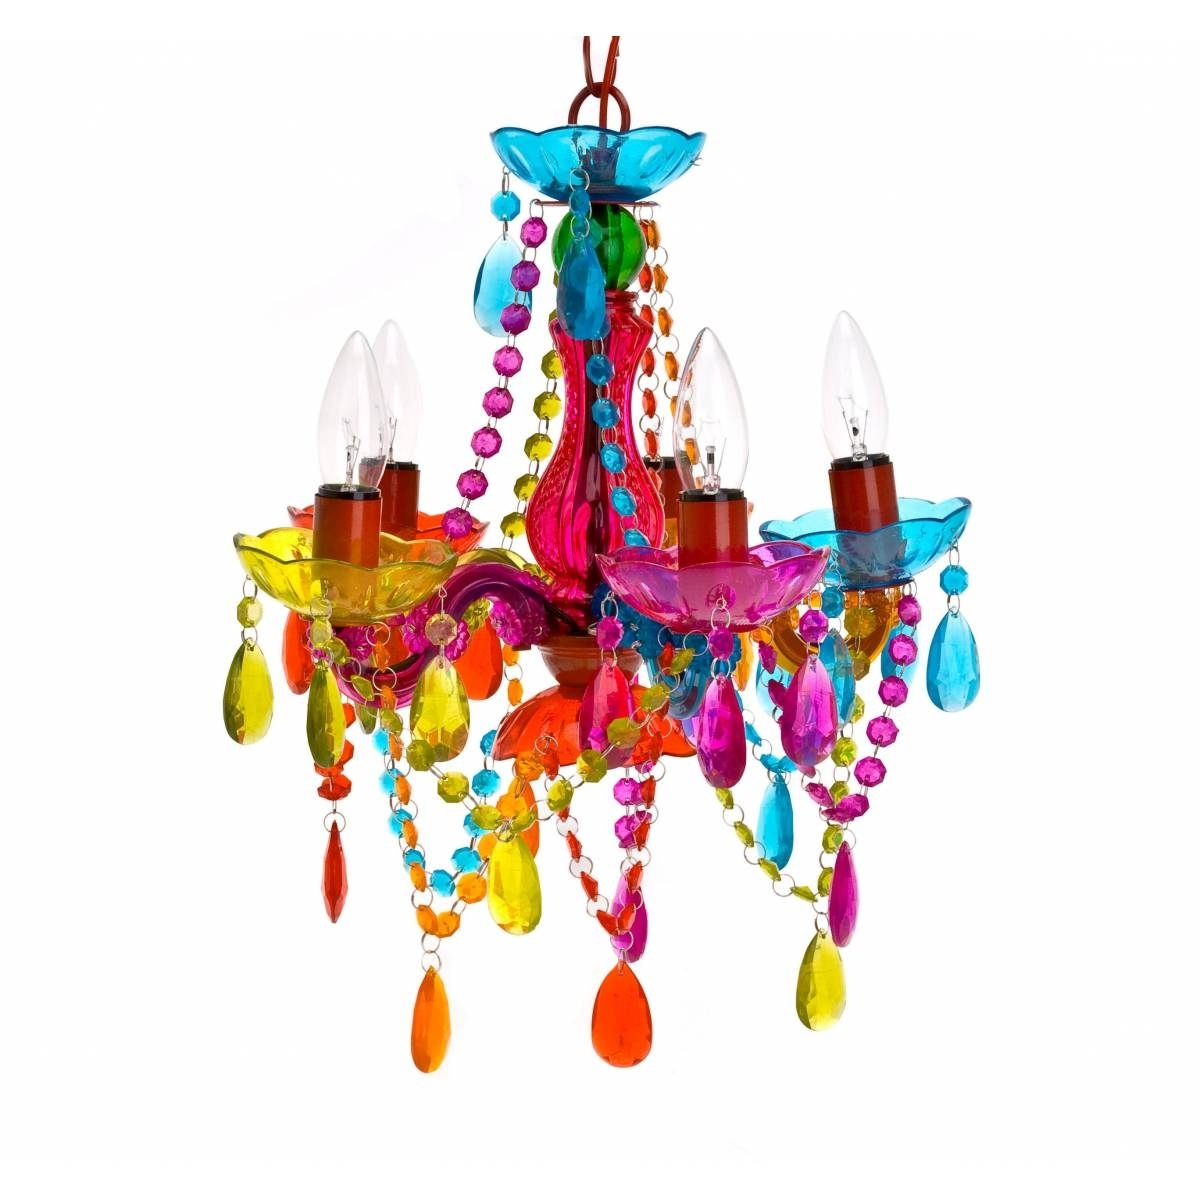 Coloured Glass Chandelier Intended For Well Liked Happy Anniversary, Studio 54! Decor Inspiration From The Club's Look (View 5 of 15)